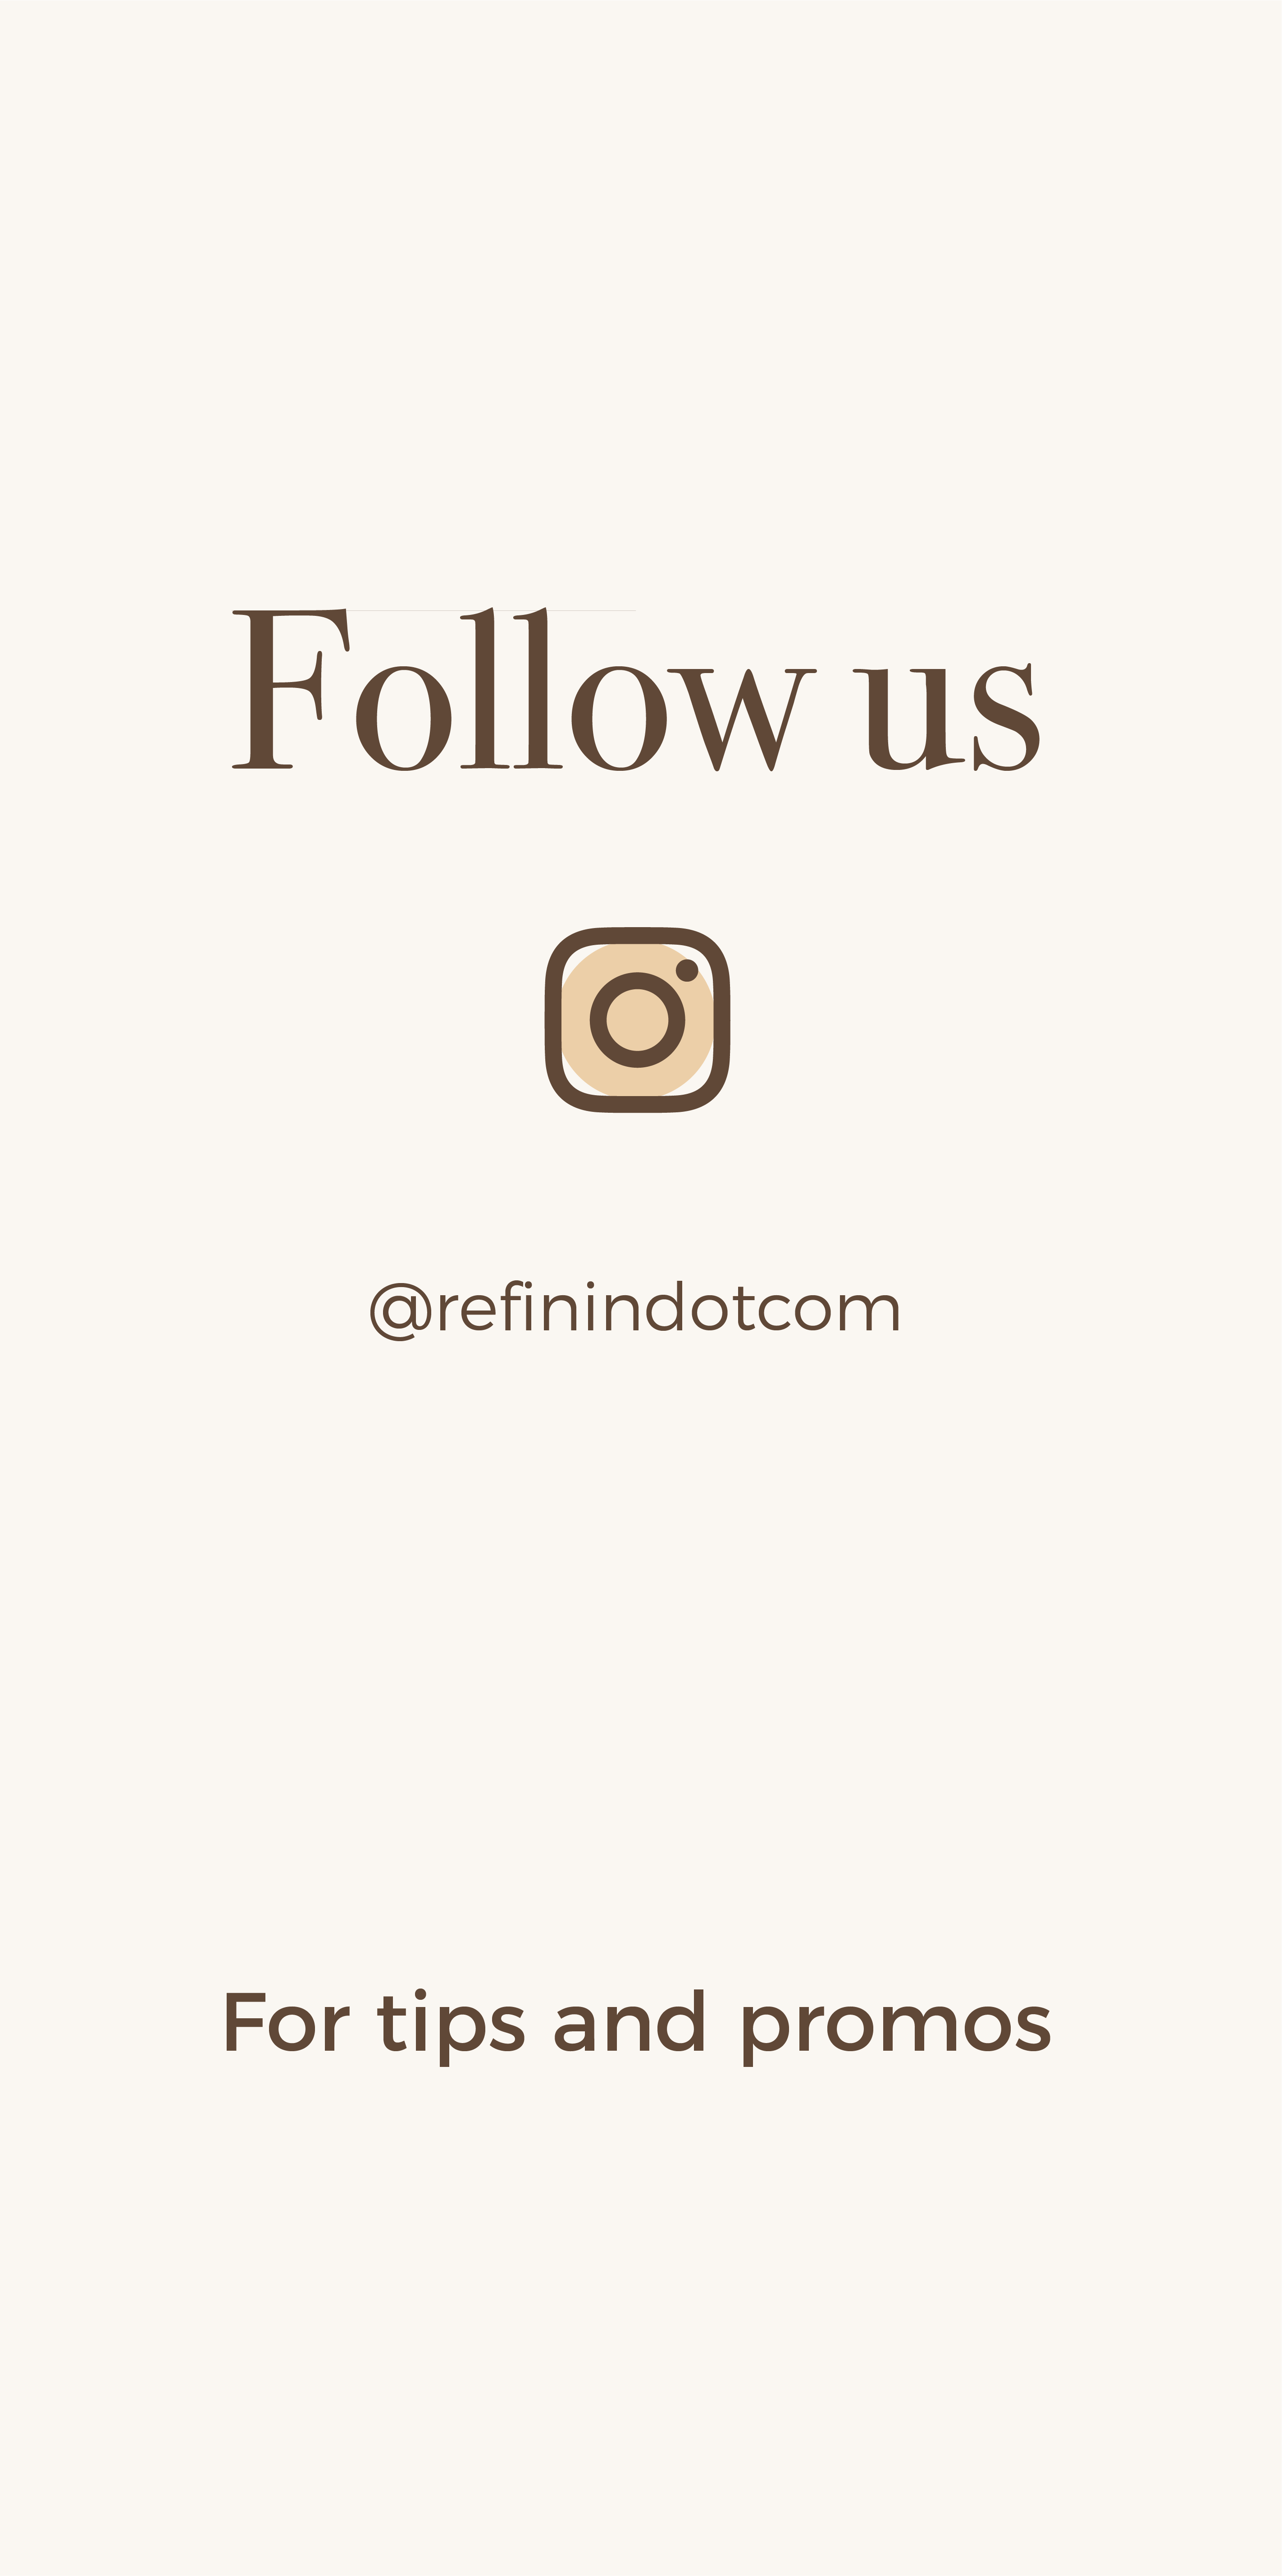 Follow @refinindot.com on instagram